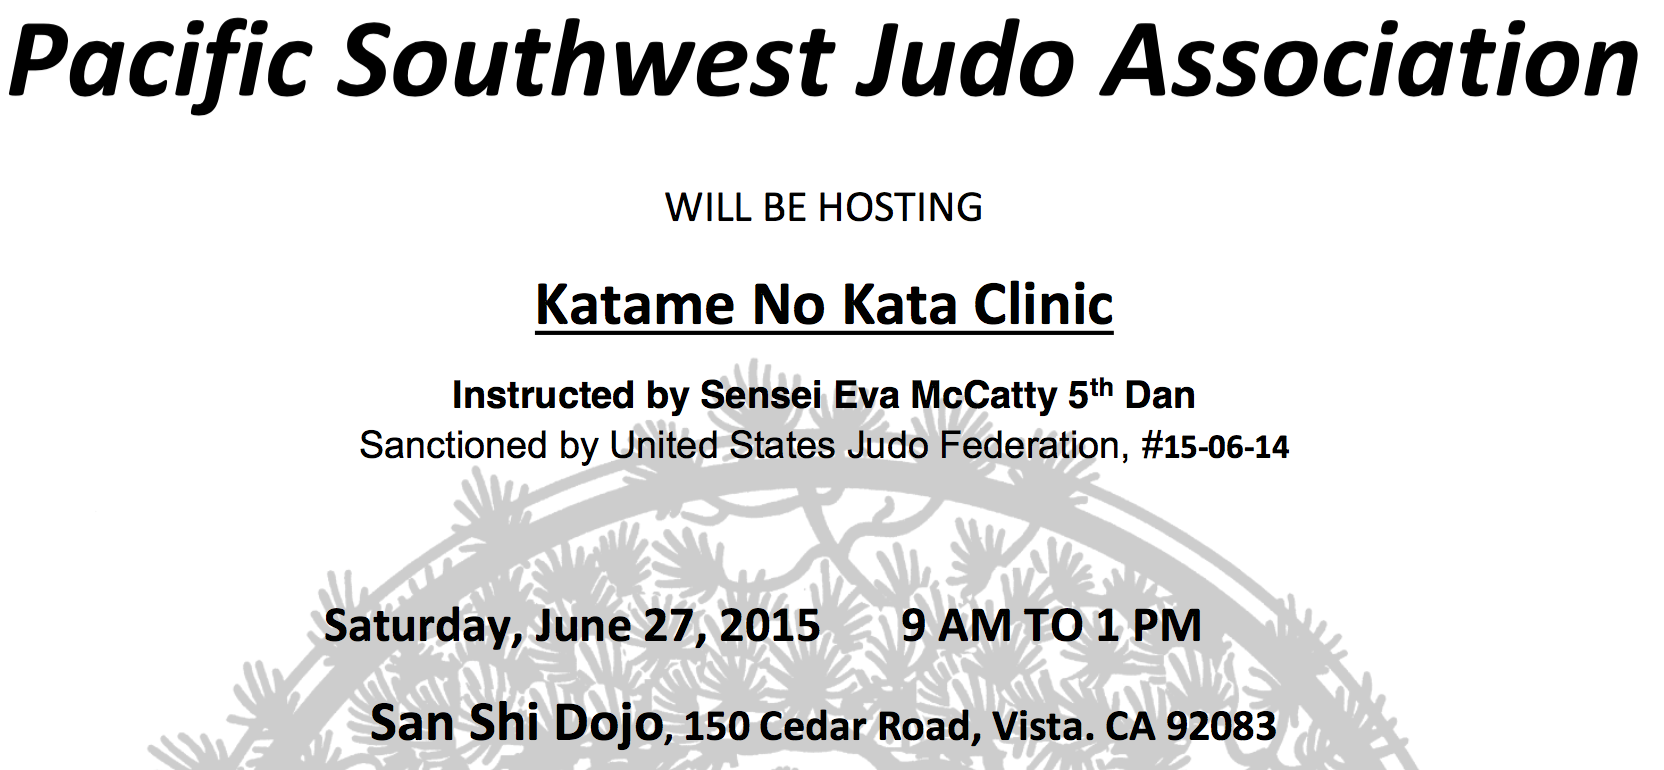 2015 May : Pacific Southwest Judo Association